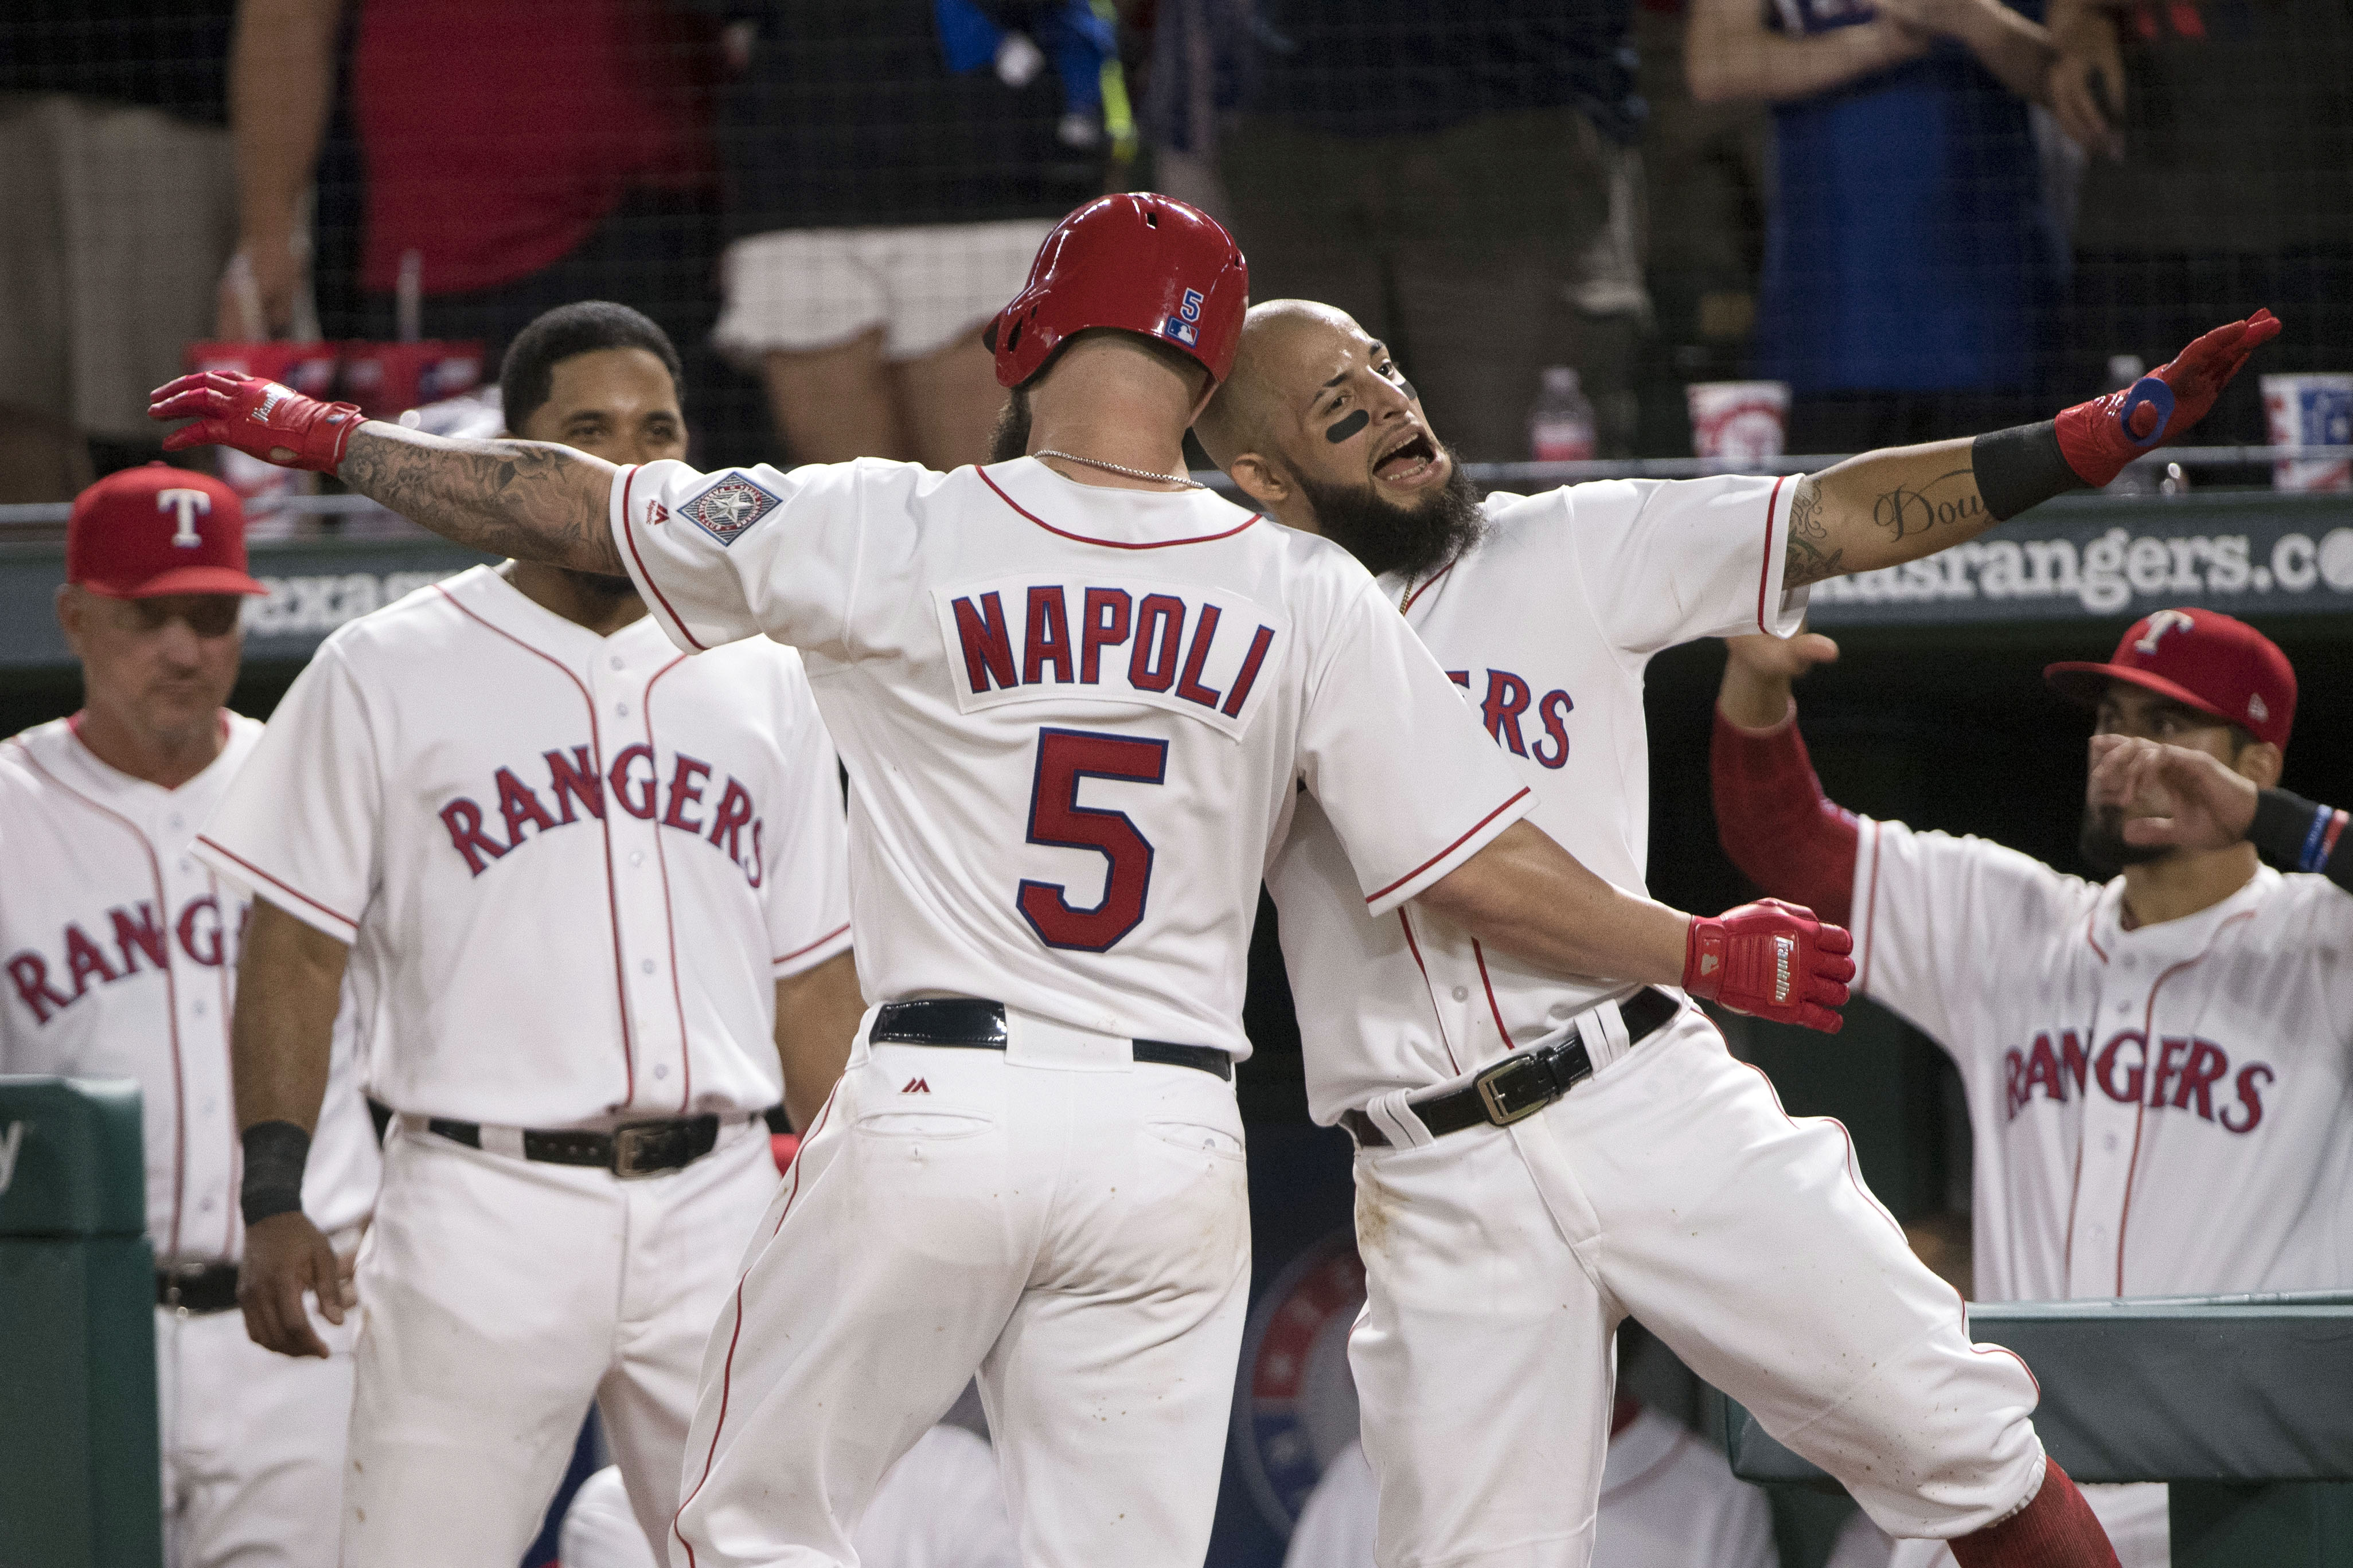 Aug 12, 2017; Arlington, TX, USA; Texas Rangers first baseman Mike Napoli (5) and second baseman Rougned Odor (12) celebrate Naopli's home run during the fourth inning against the Houston Astros at Globe Life Park in Arlington. Mandatory Credit: Jerome Miron-USA TODAY Sports